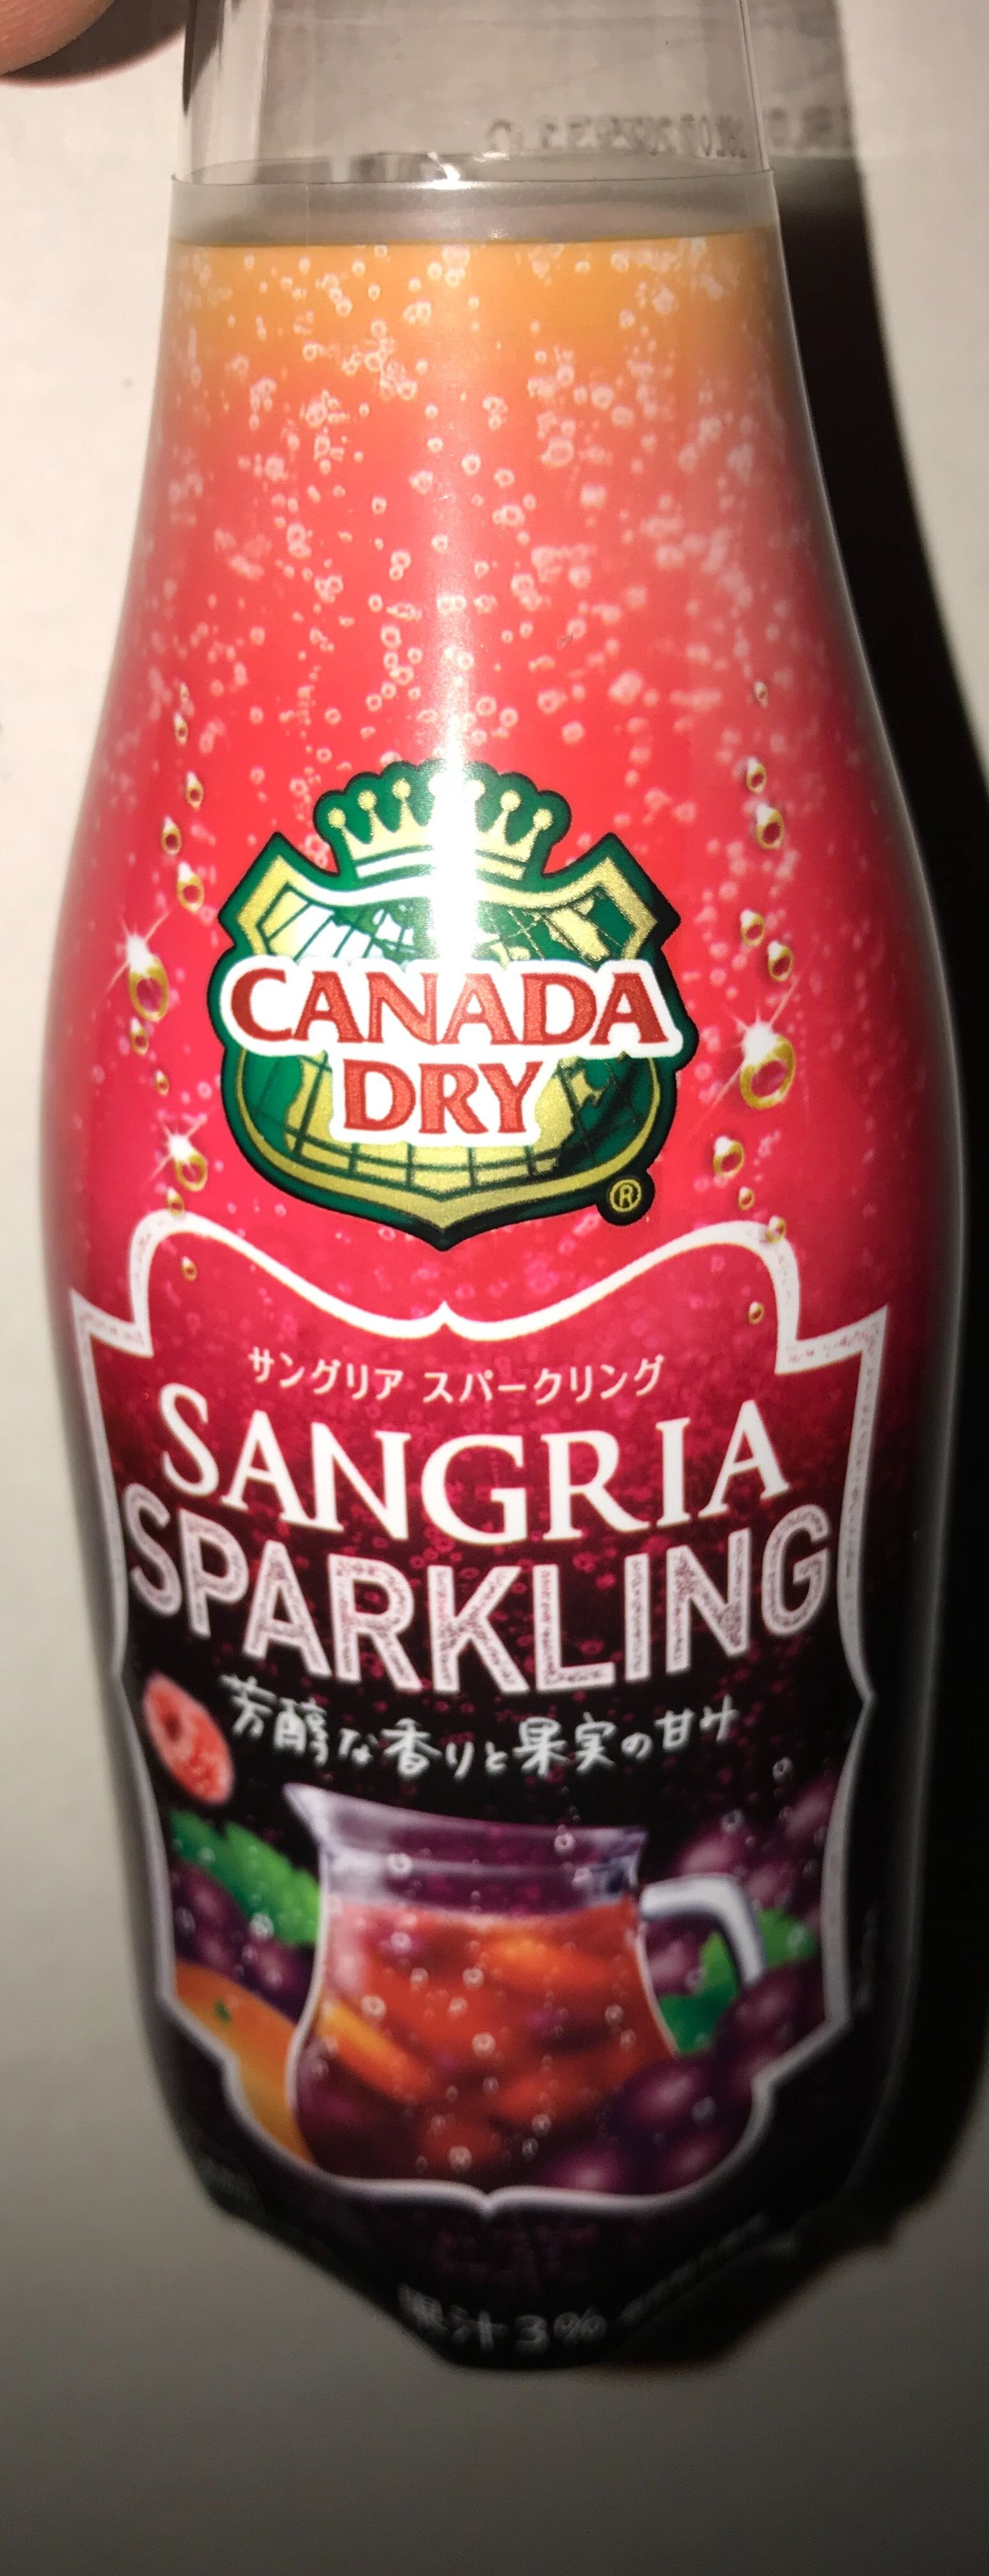 Canada Dry sangria sparkling from Japan in 2019 Non